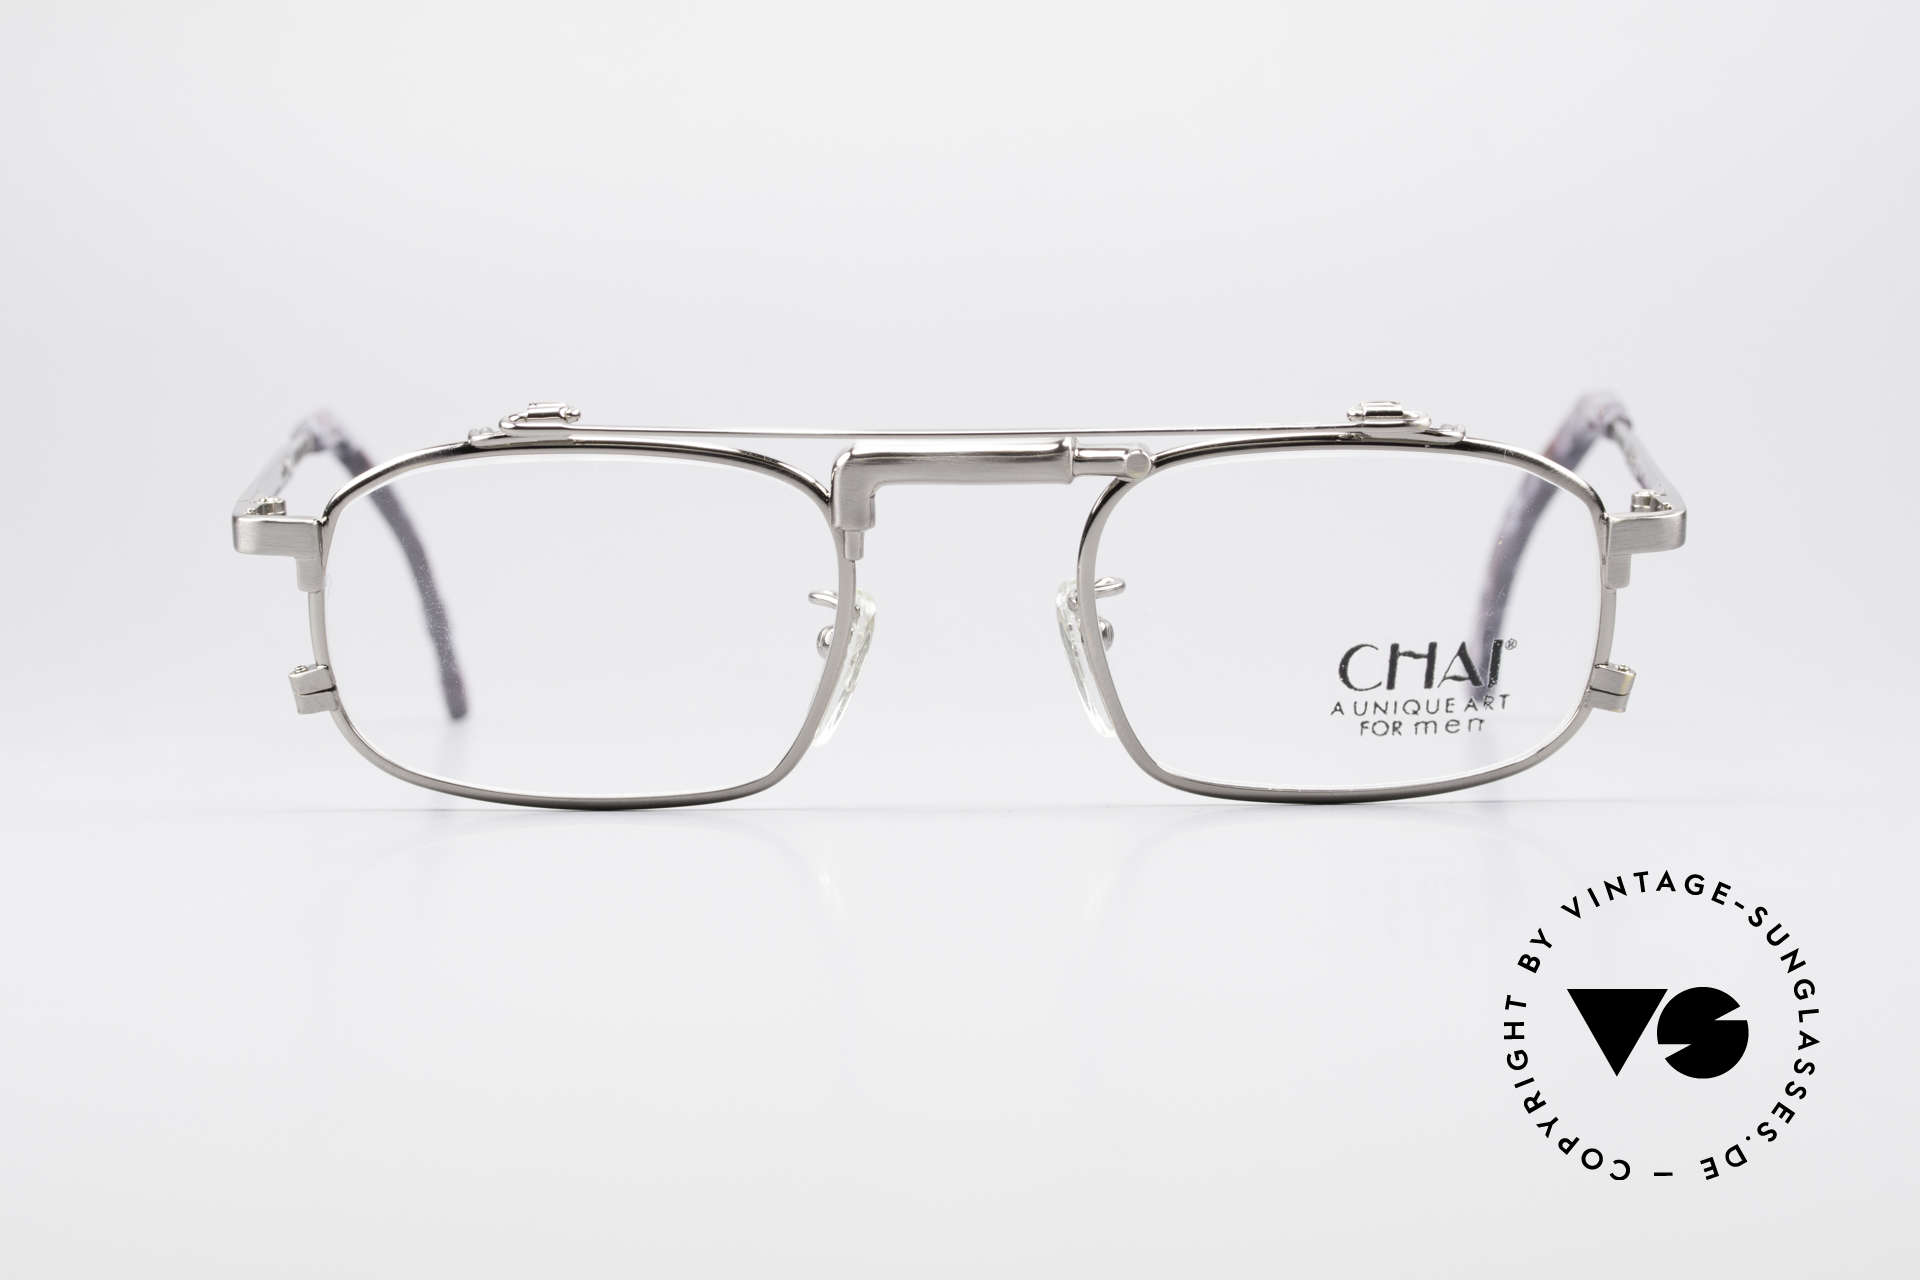 Chai No4 Square Industrial Vintage Eyeglasses, the inventive frame bridge looks like a 'water-tap', Made for Men and Women